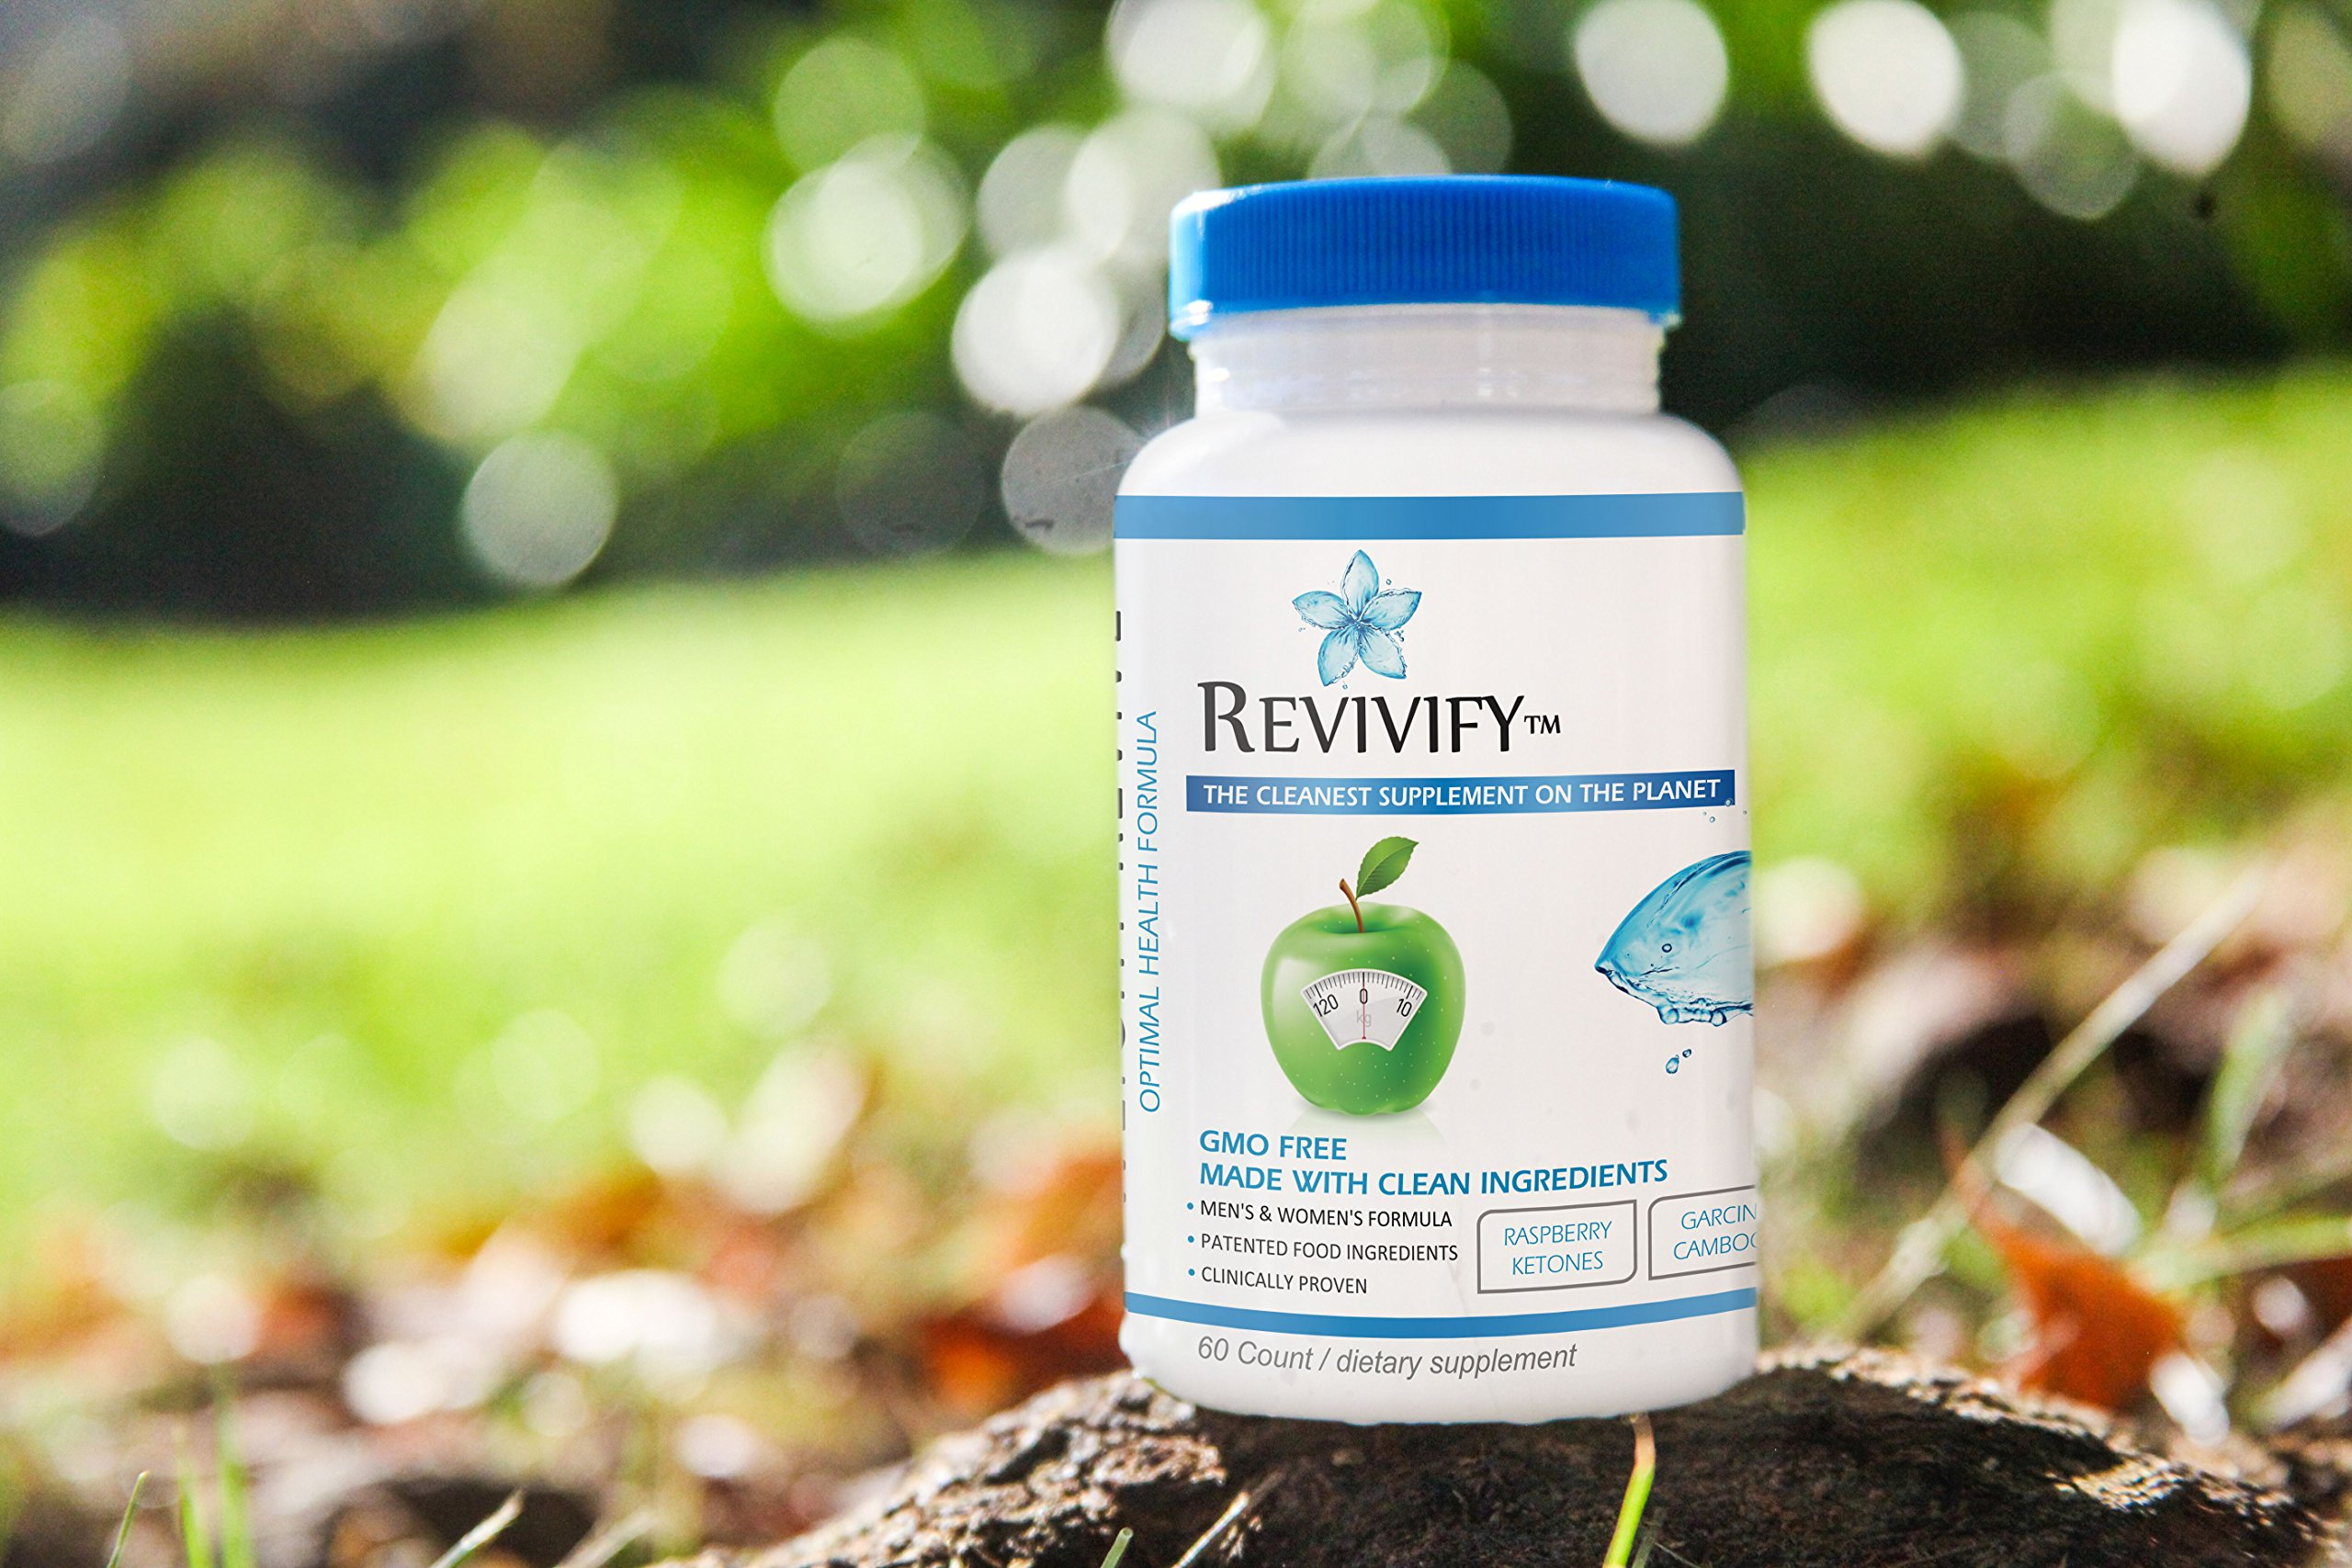 Revivify Organic GMO-Free Weight Revive and Weight Loss Aid with Garcinia Cambogia, Ketones, Green Coffee, Green Tea and more. Gluten Free and Ultraformulated Nutrition and Support - 60 count